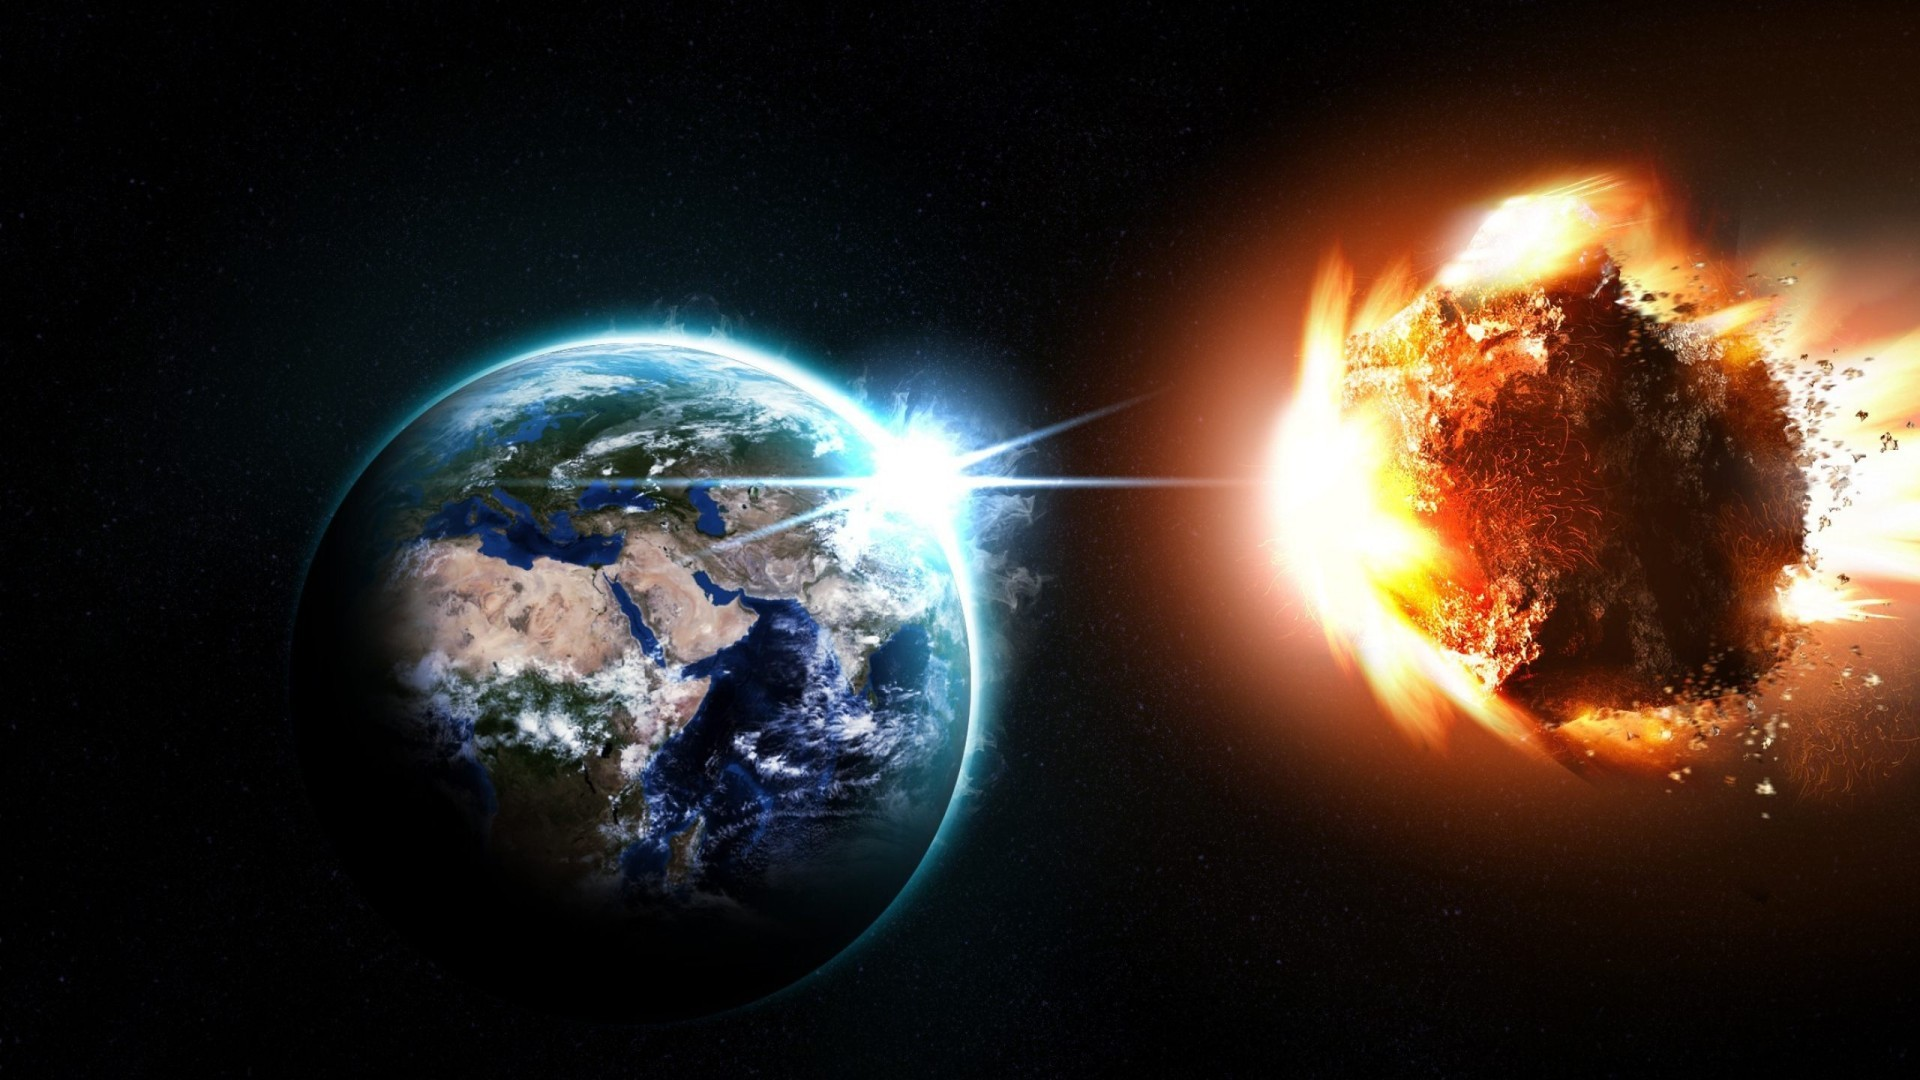 Asteroid and Earth Wallpaper